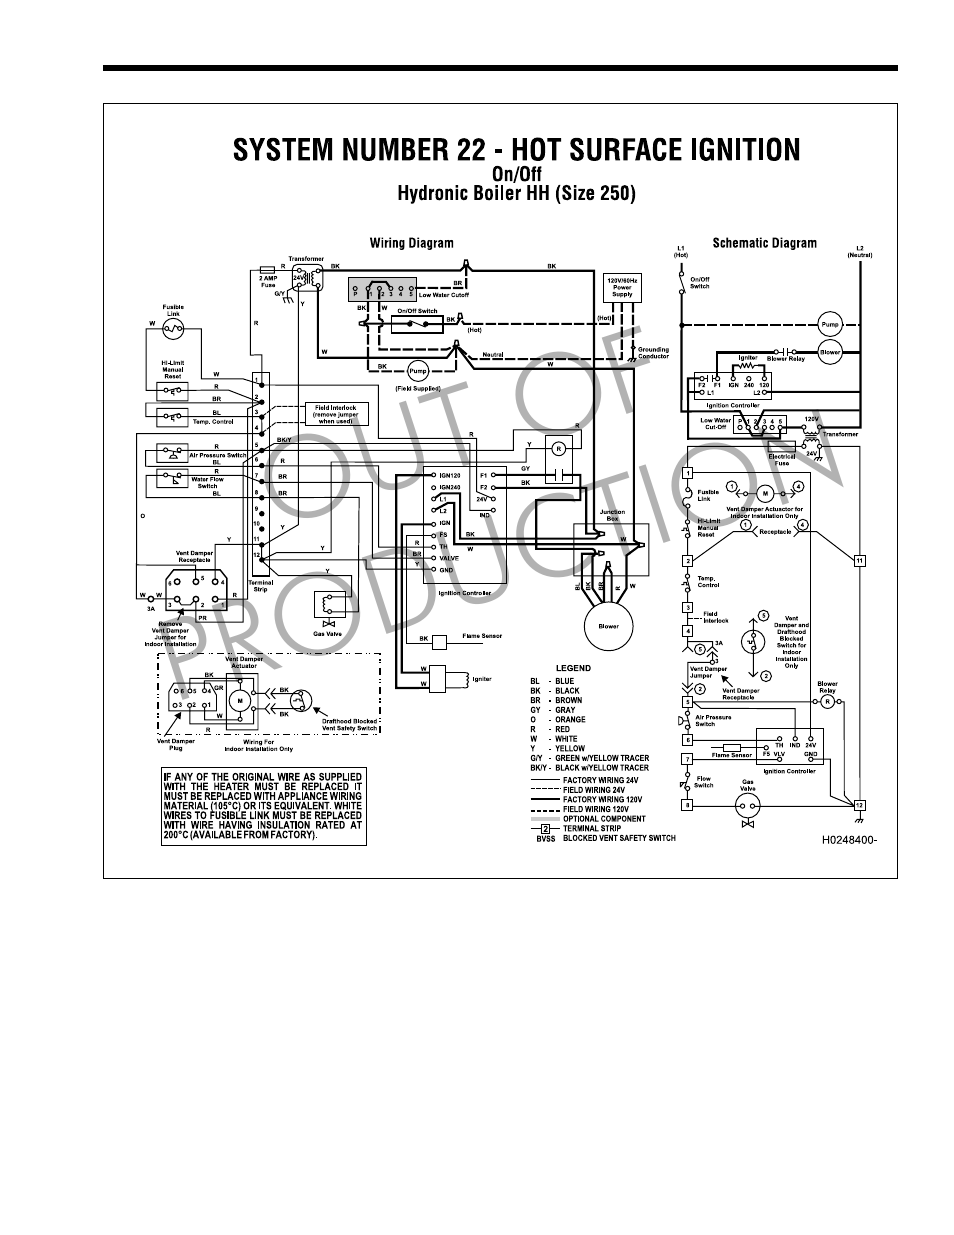 laars mighty therm lo nox ph sizes 250_400 install and operating manual page21 teledyne laars epg epm series windshield wiper wiring diagram for